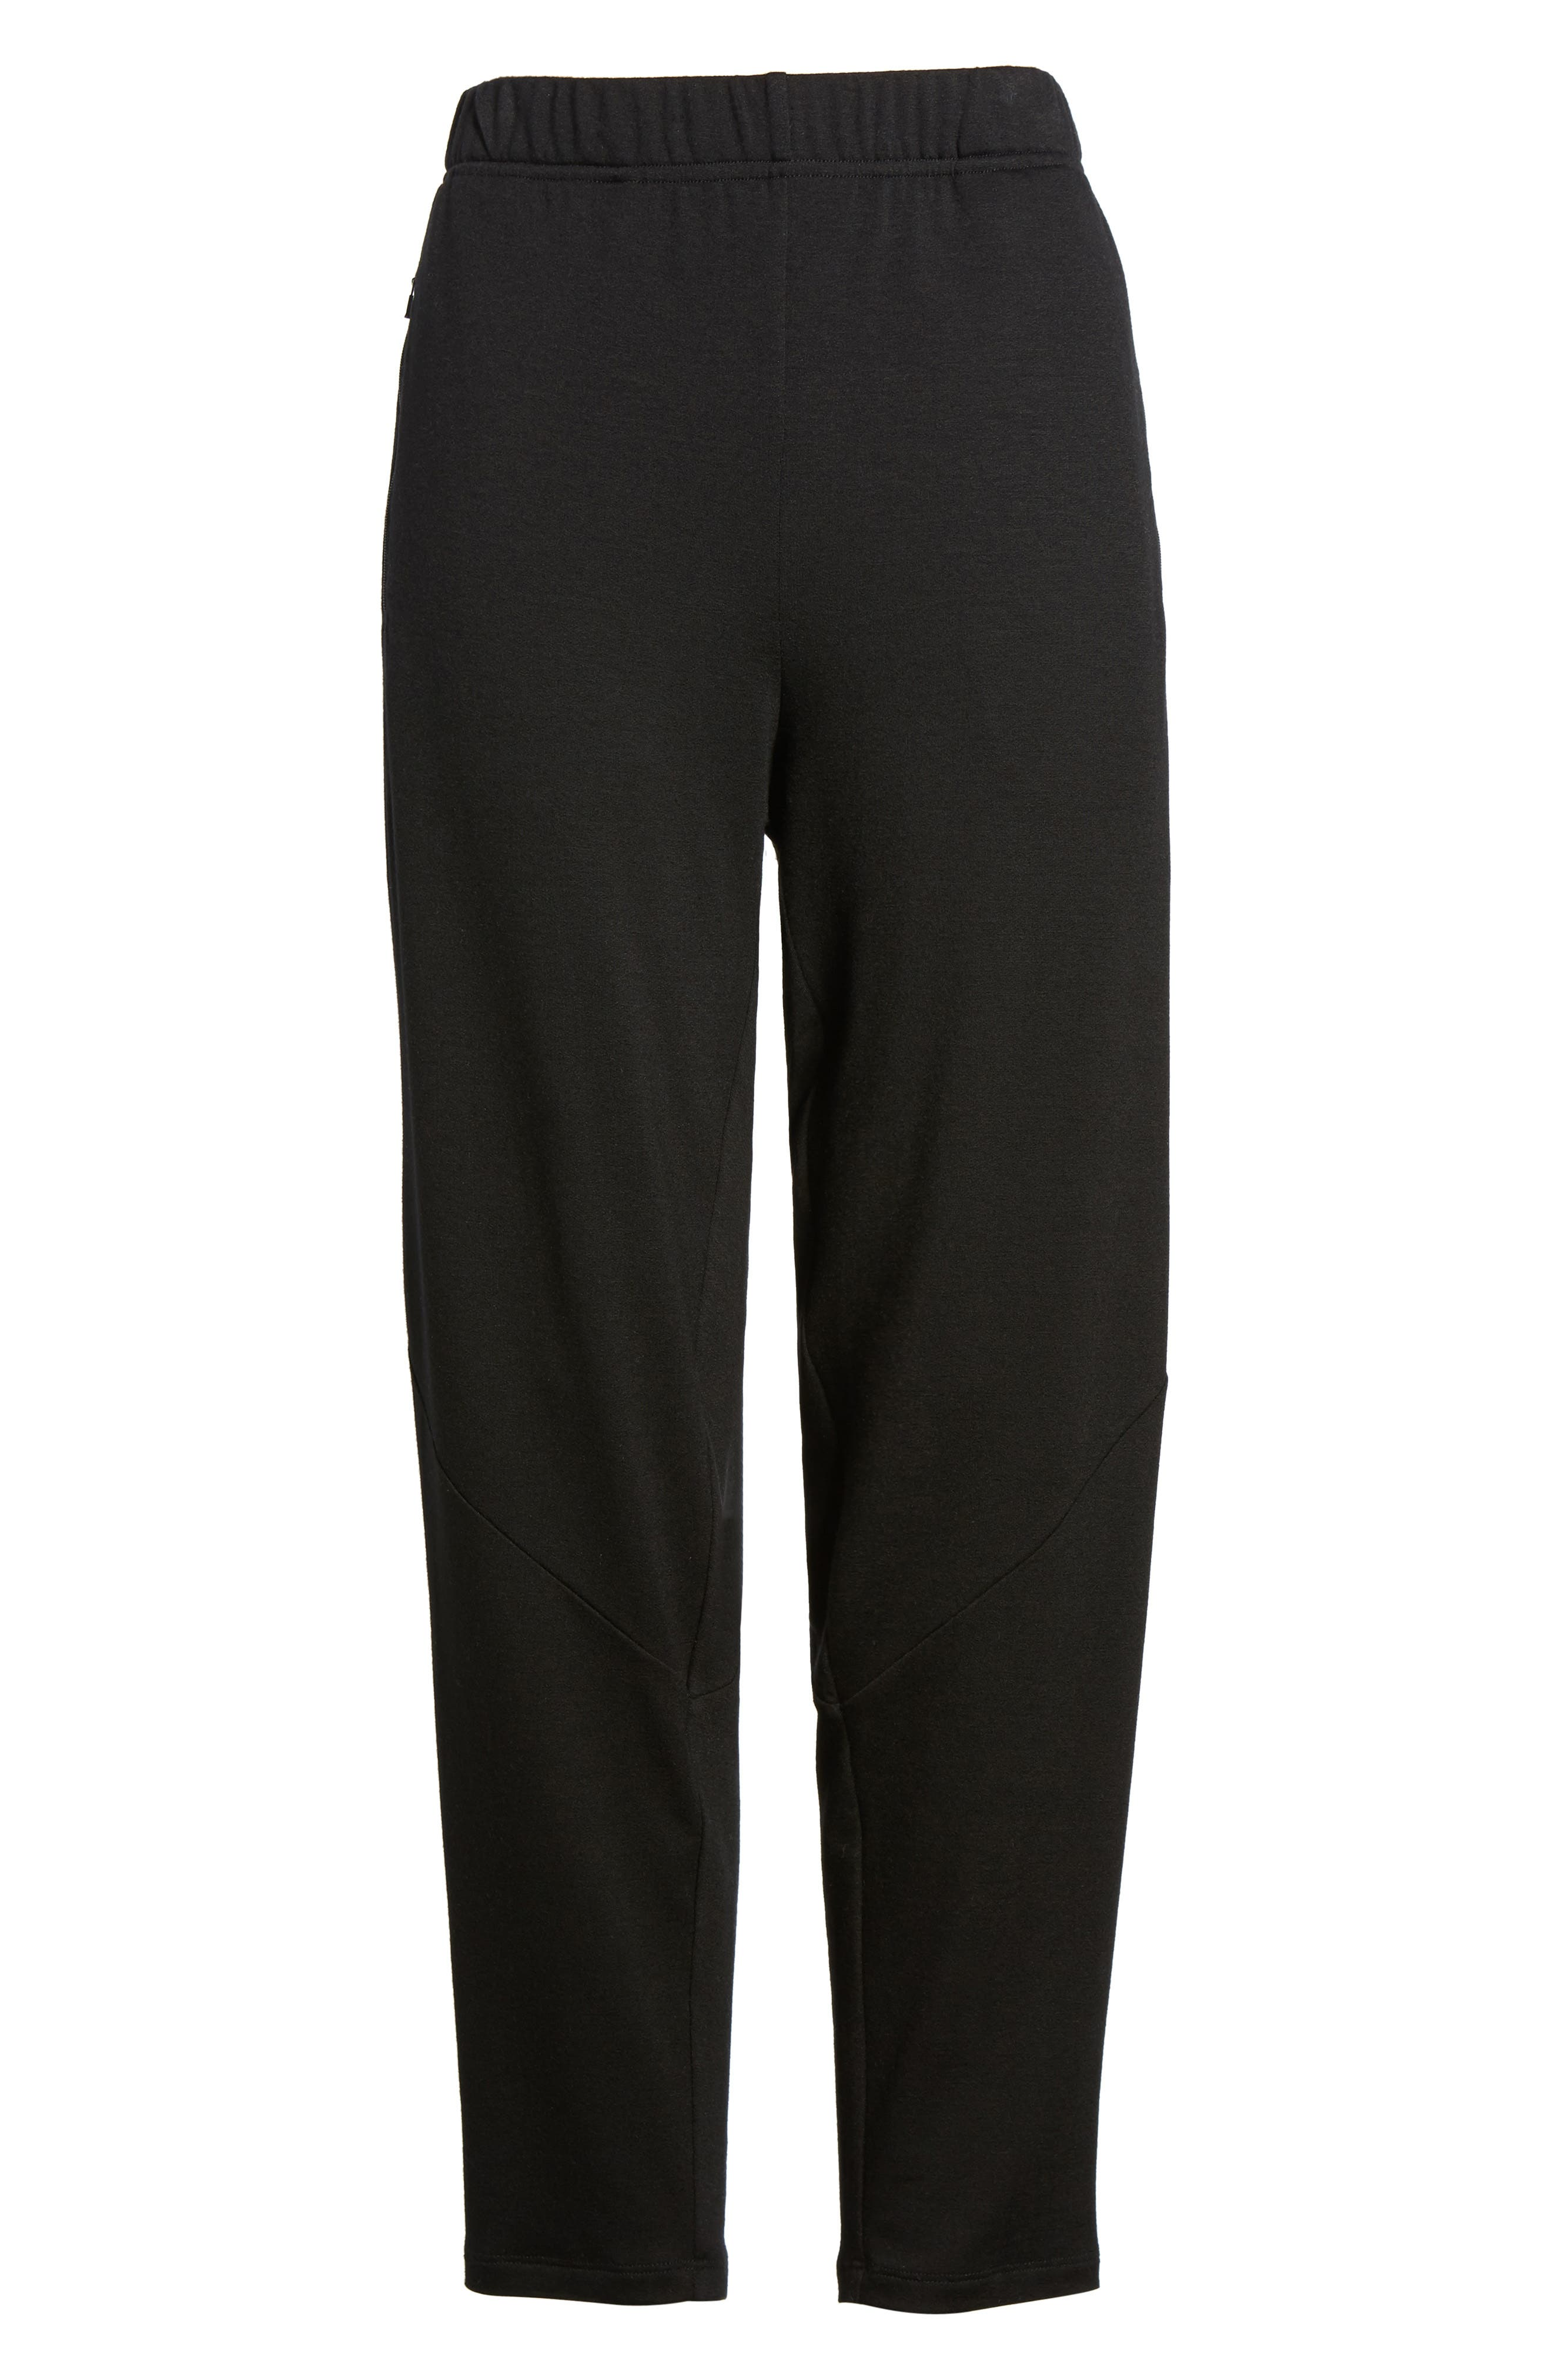 Slouchy Stretch Tencel<sup>®</sup> Lyocell Tapered Pants,                             Alternate thumbnail 7, color,                             001